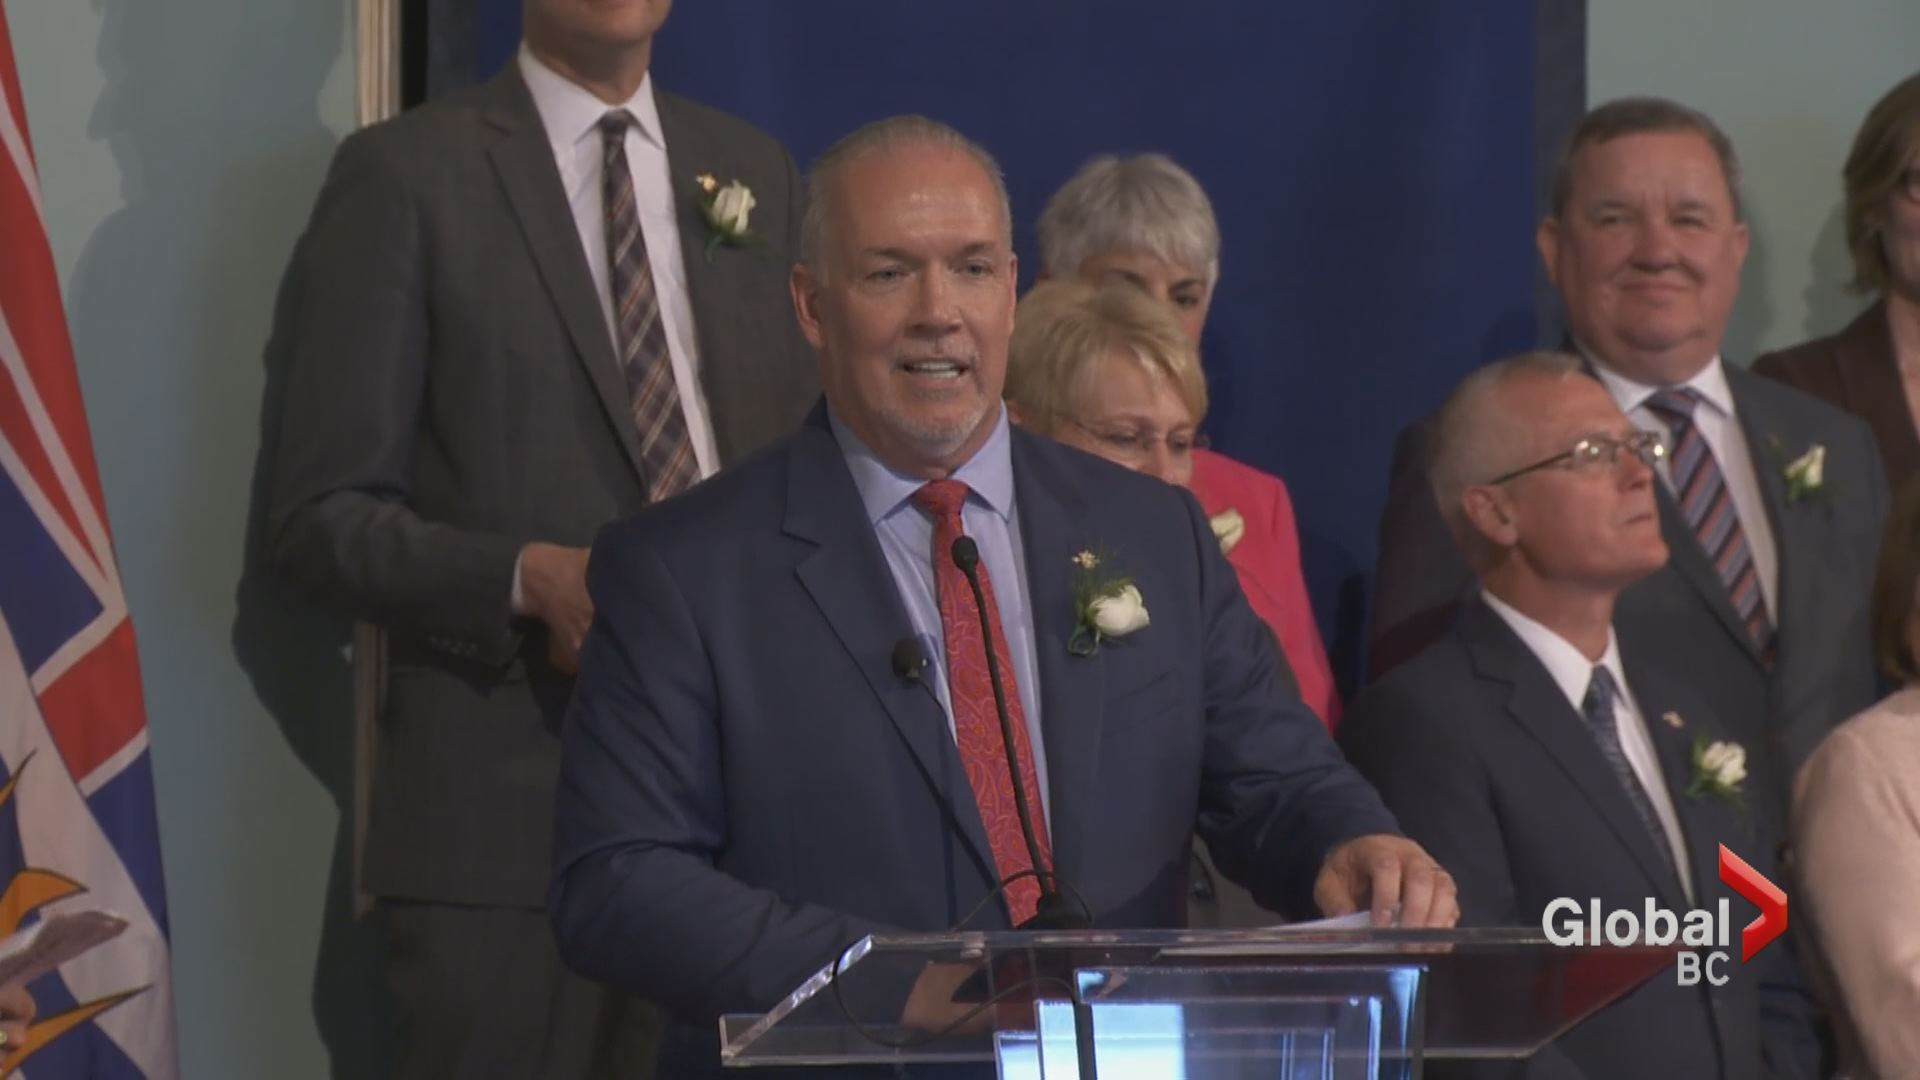 Premier John Horgan's brother dies of cancer at 71